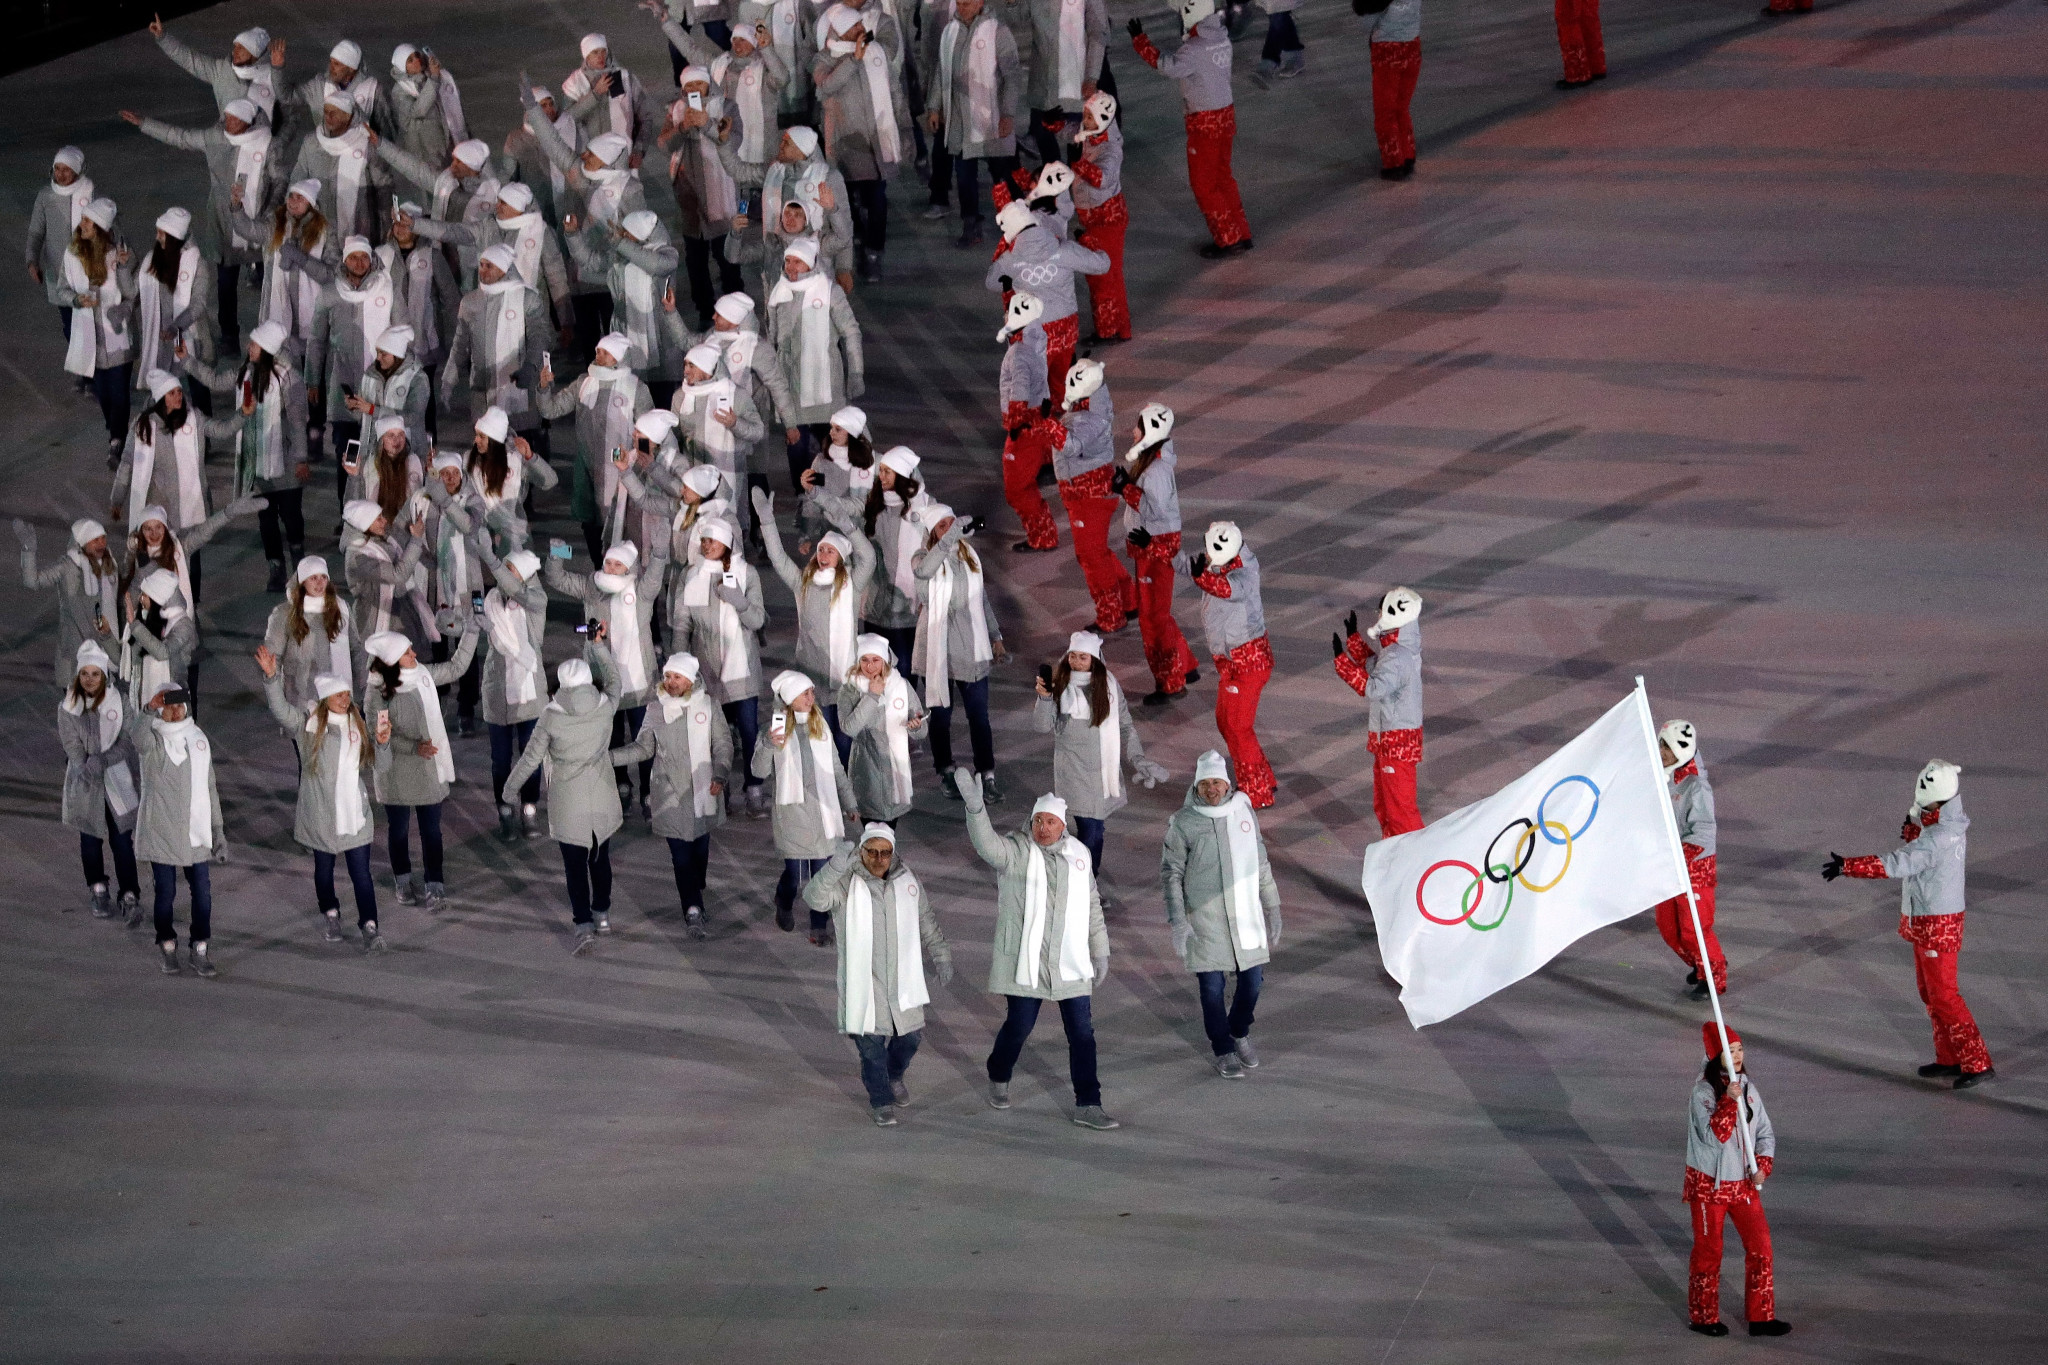 A volunteer also carried the neutral flag for the OAR team at the recent Olympic Games ©Getty Images